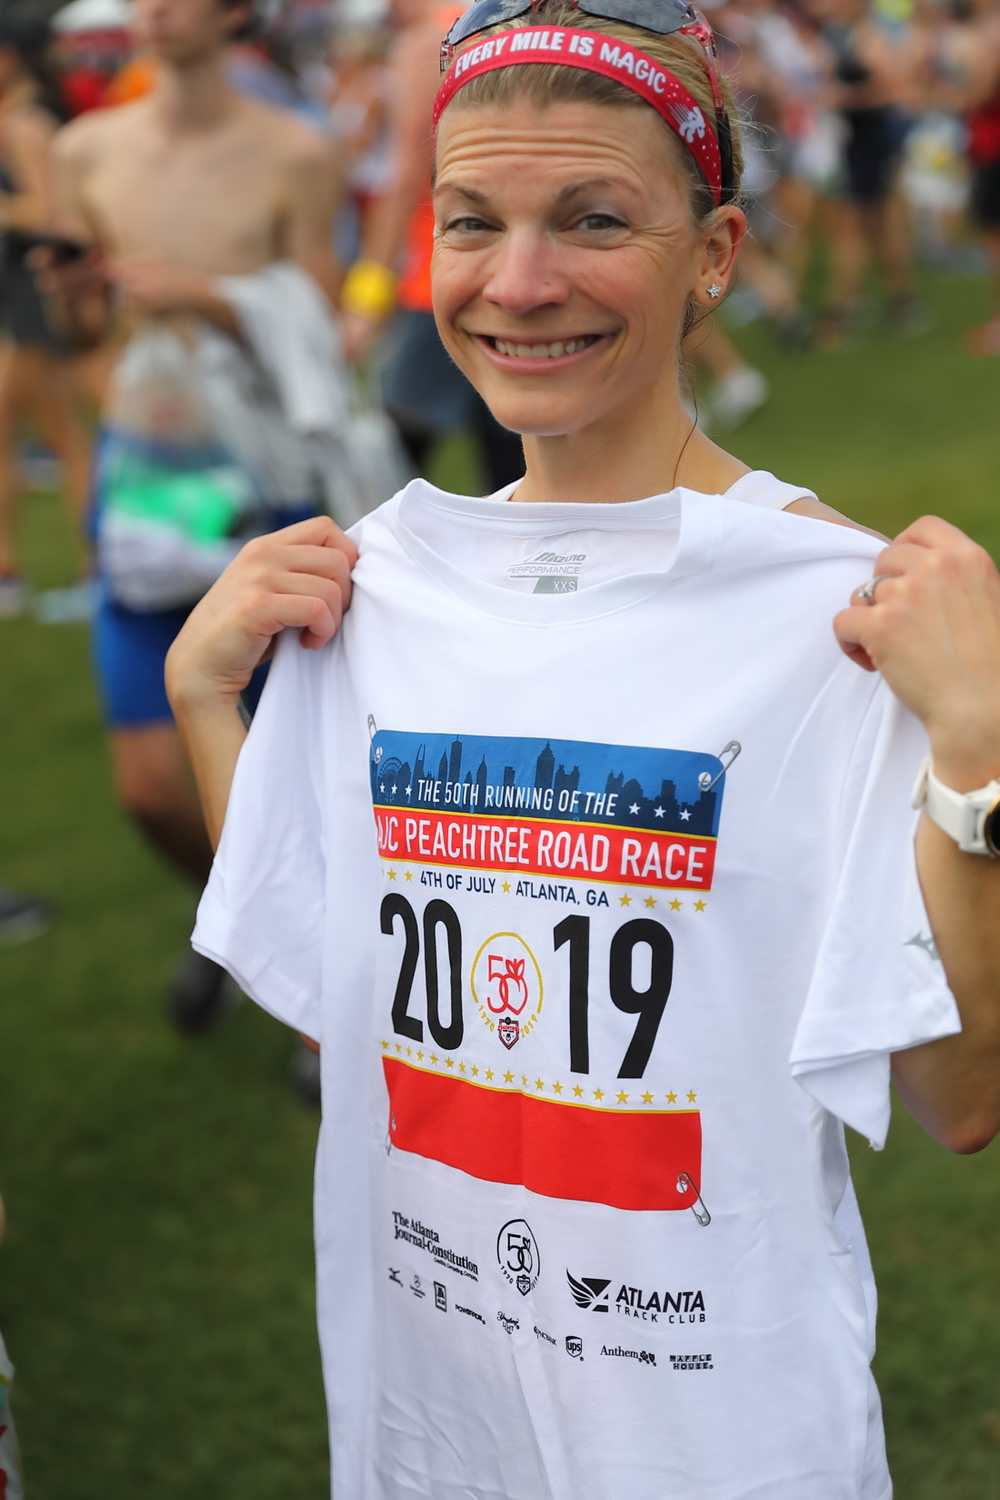 Jen and her top finisher tee-shirt